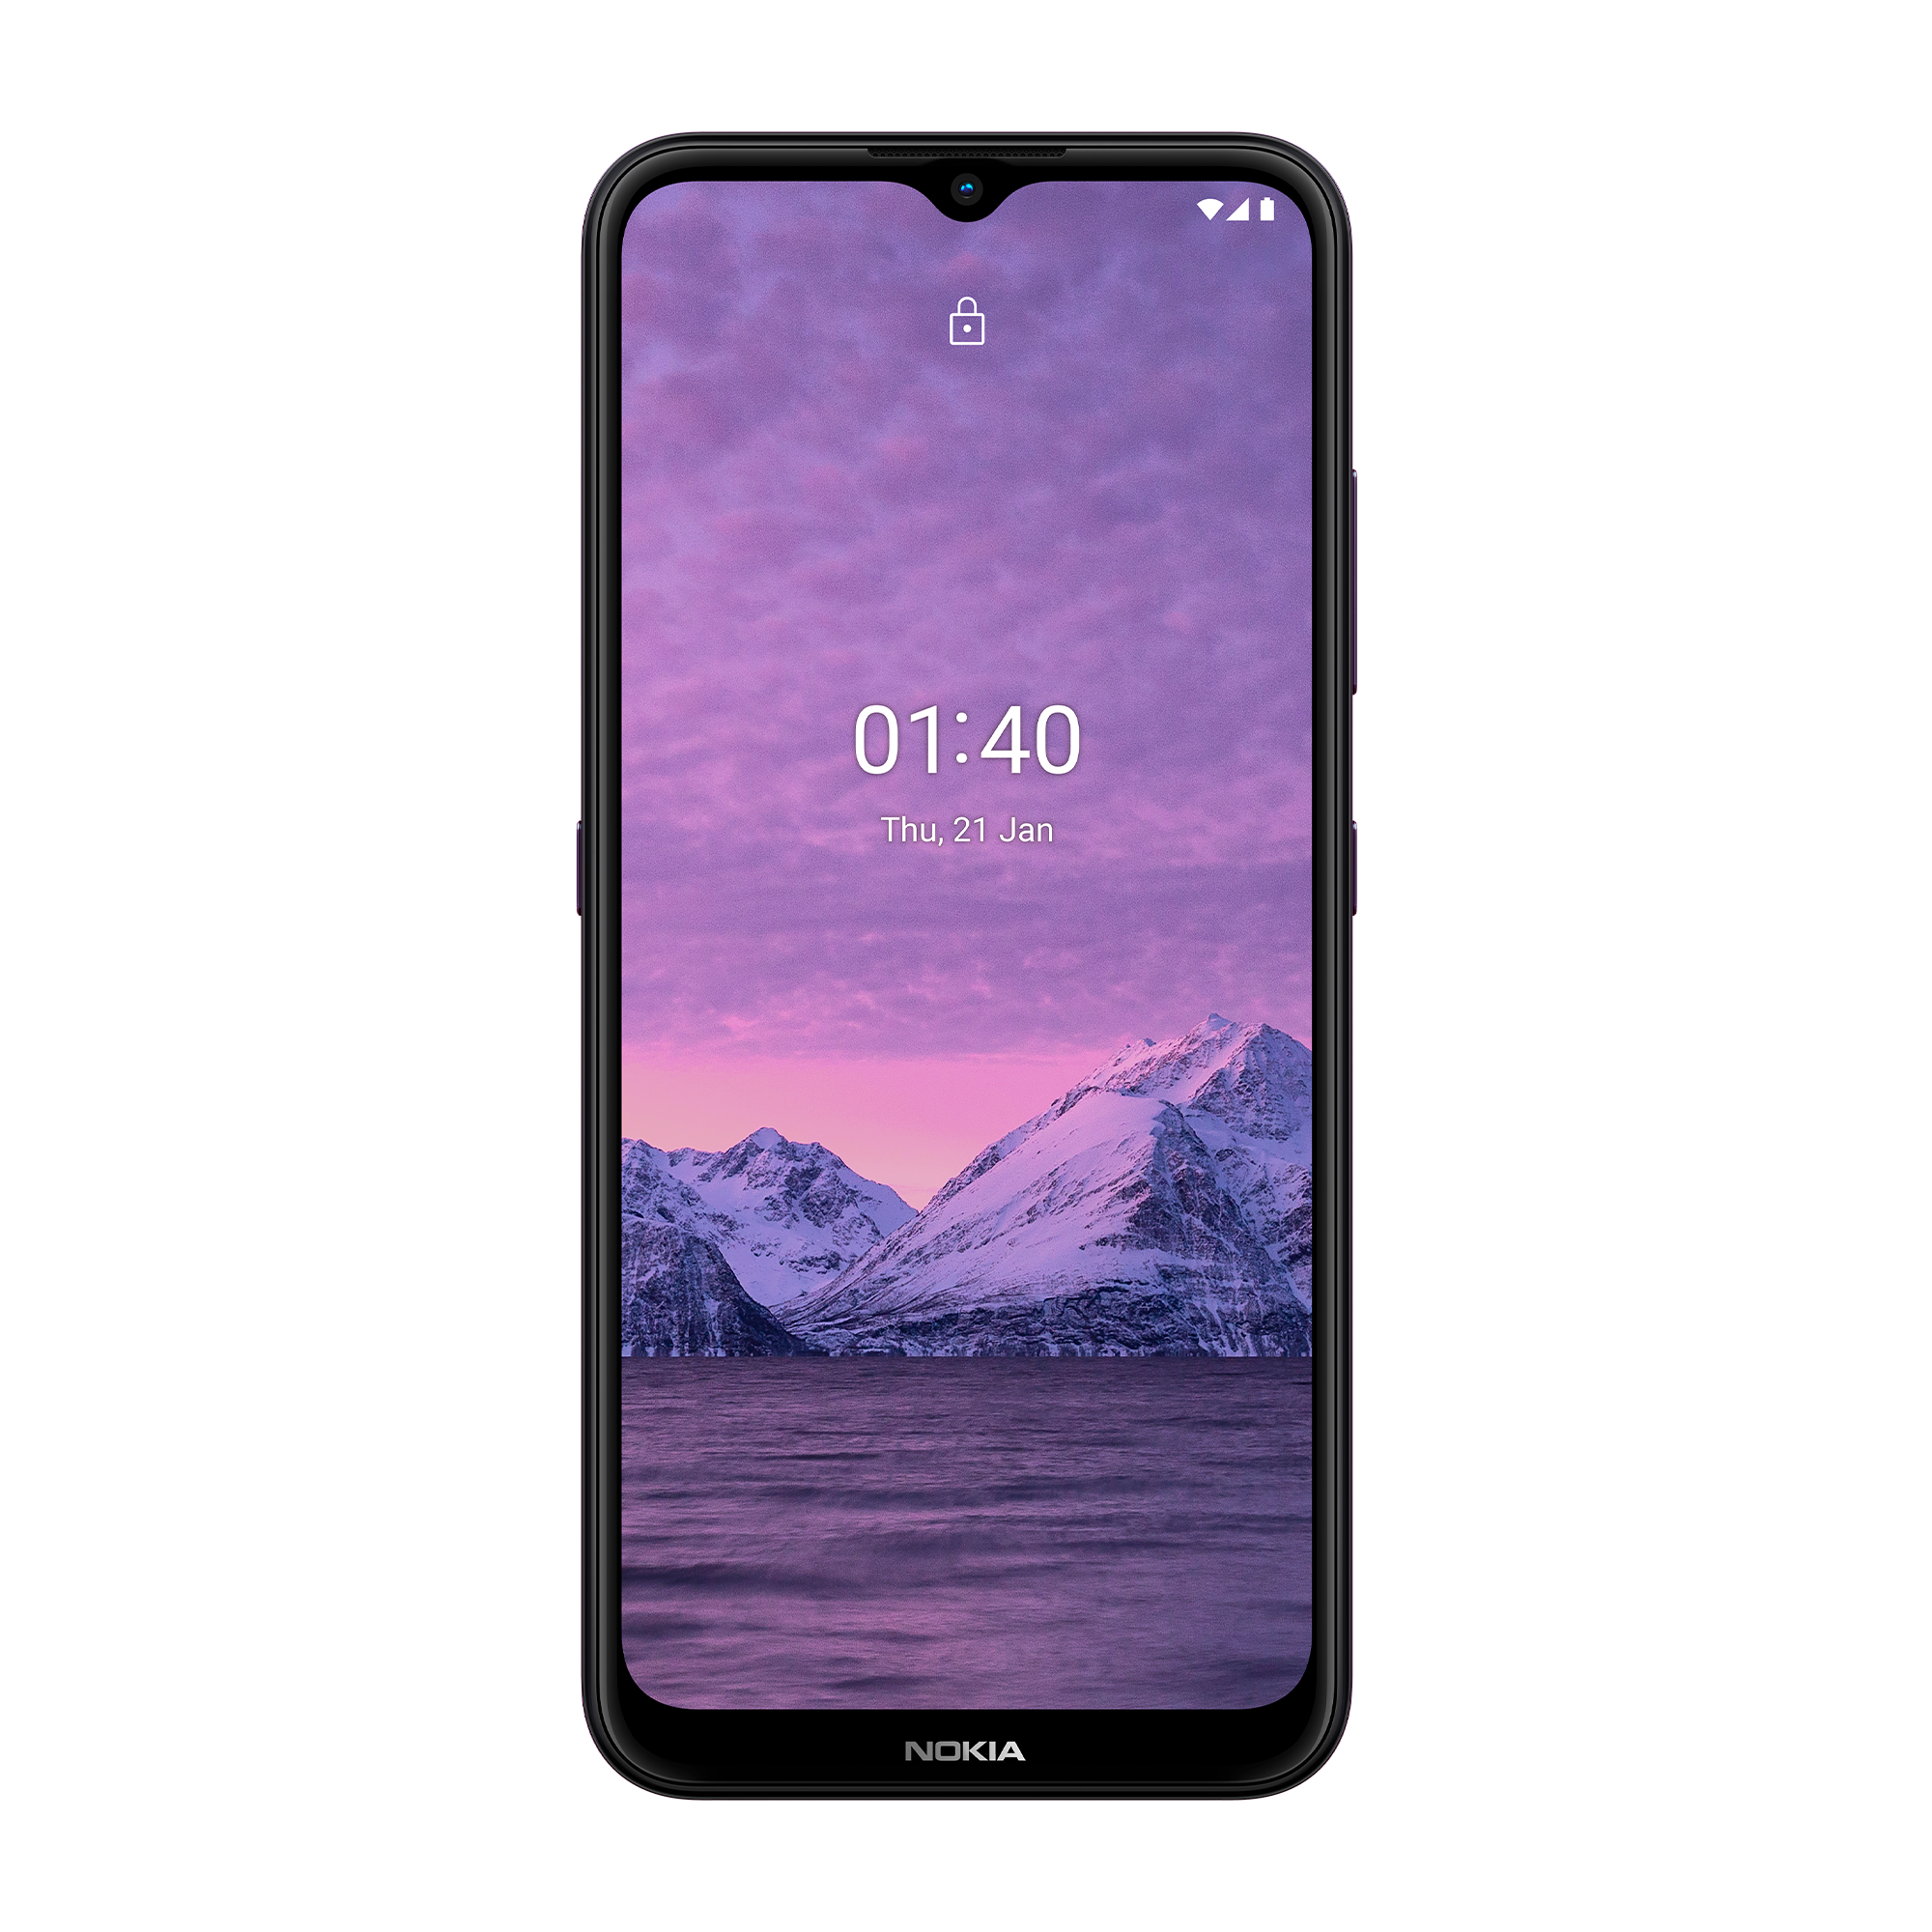 nokia_8_3_5g-front-PolarNight copy.png